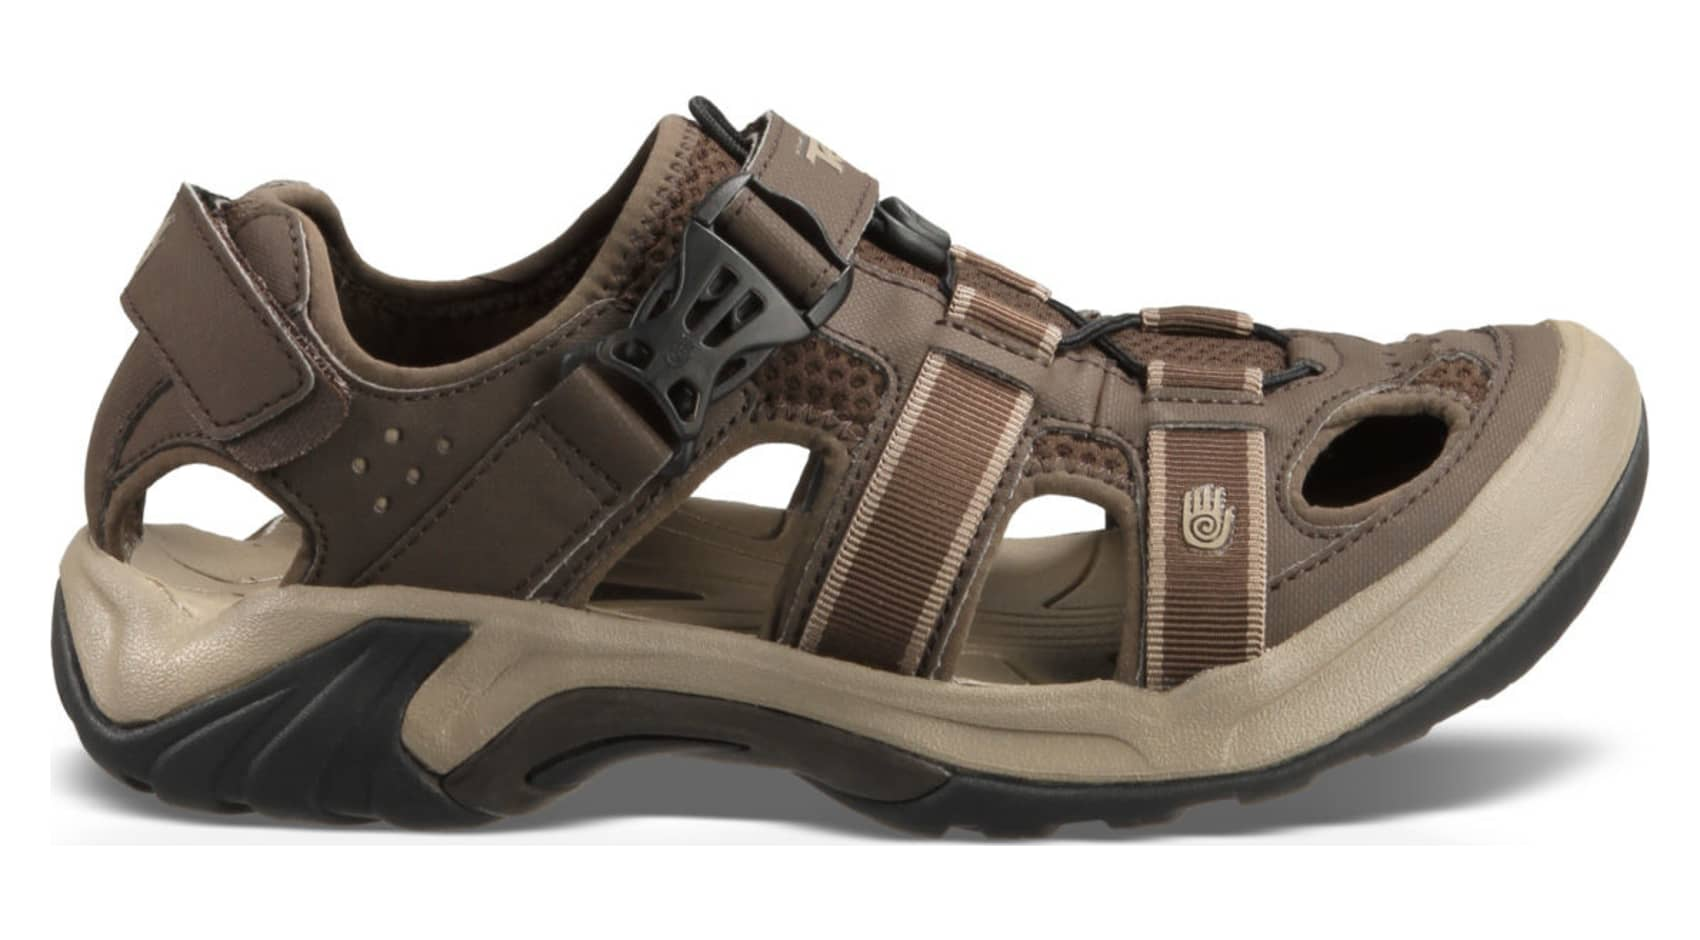 Fantastic Teva Sandals Women39s Bungee Cord 1000271 BNGC Brown Closed Toe Ewaso